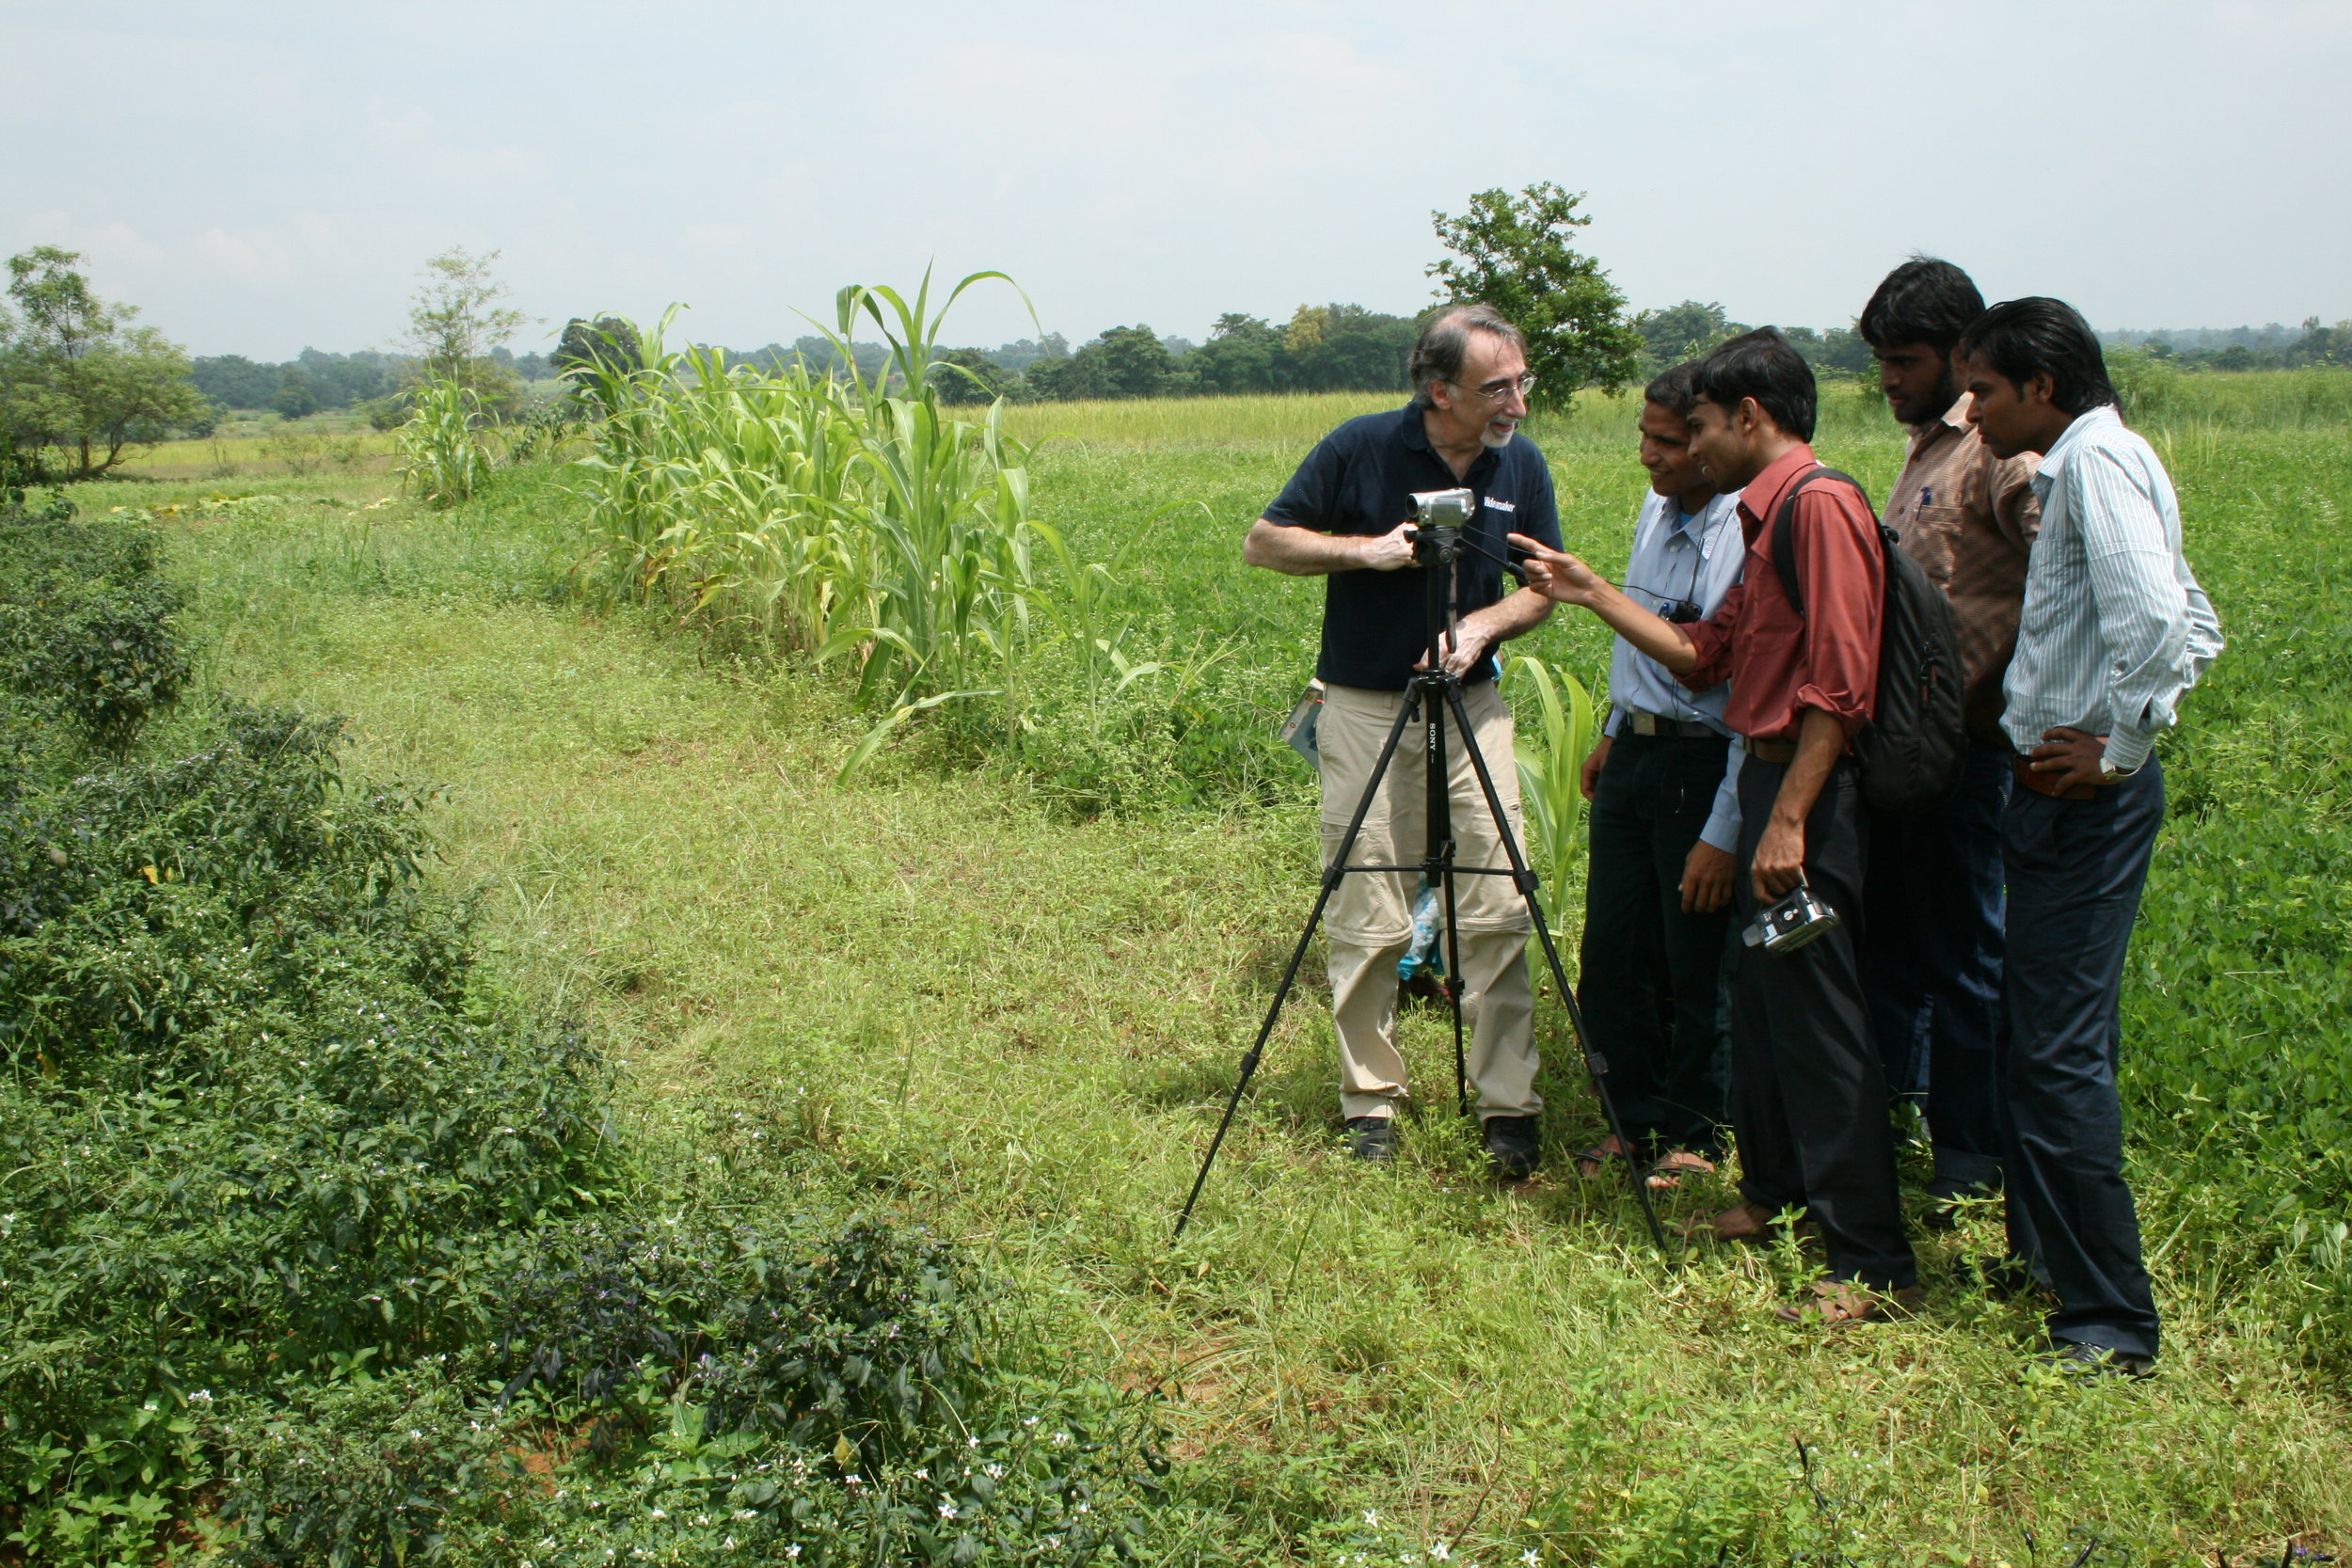 Working with Digital Green in India on sustainable farming techniques.